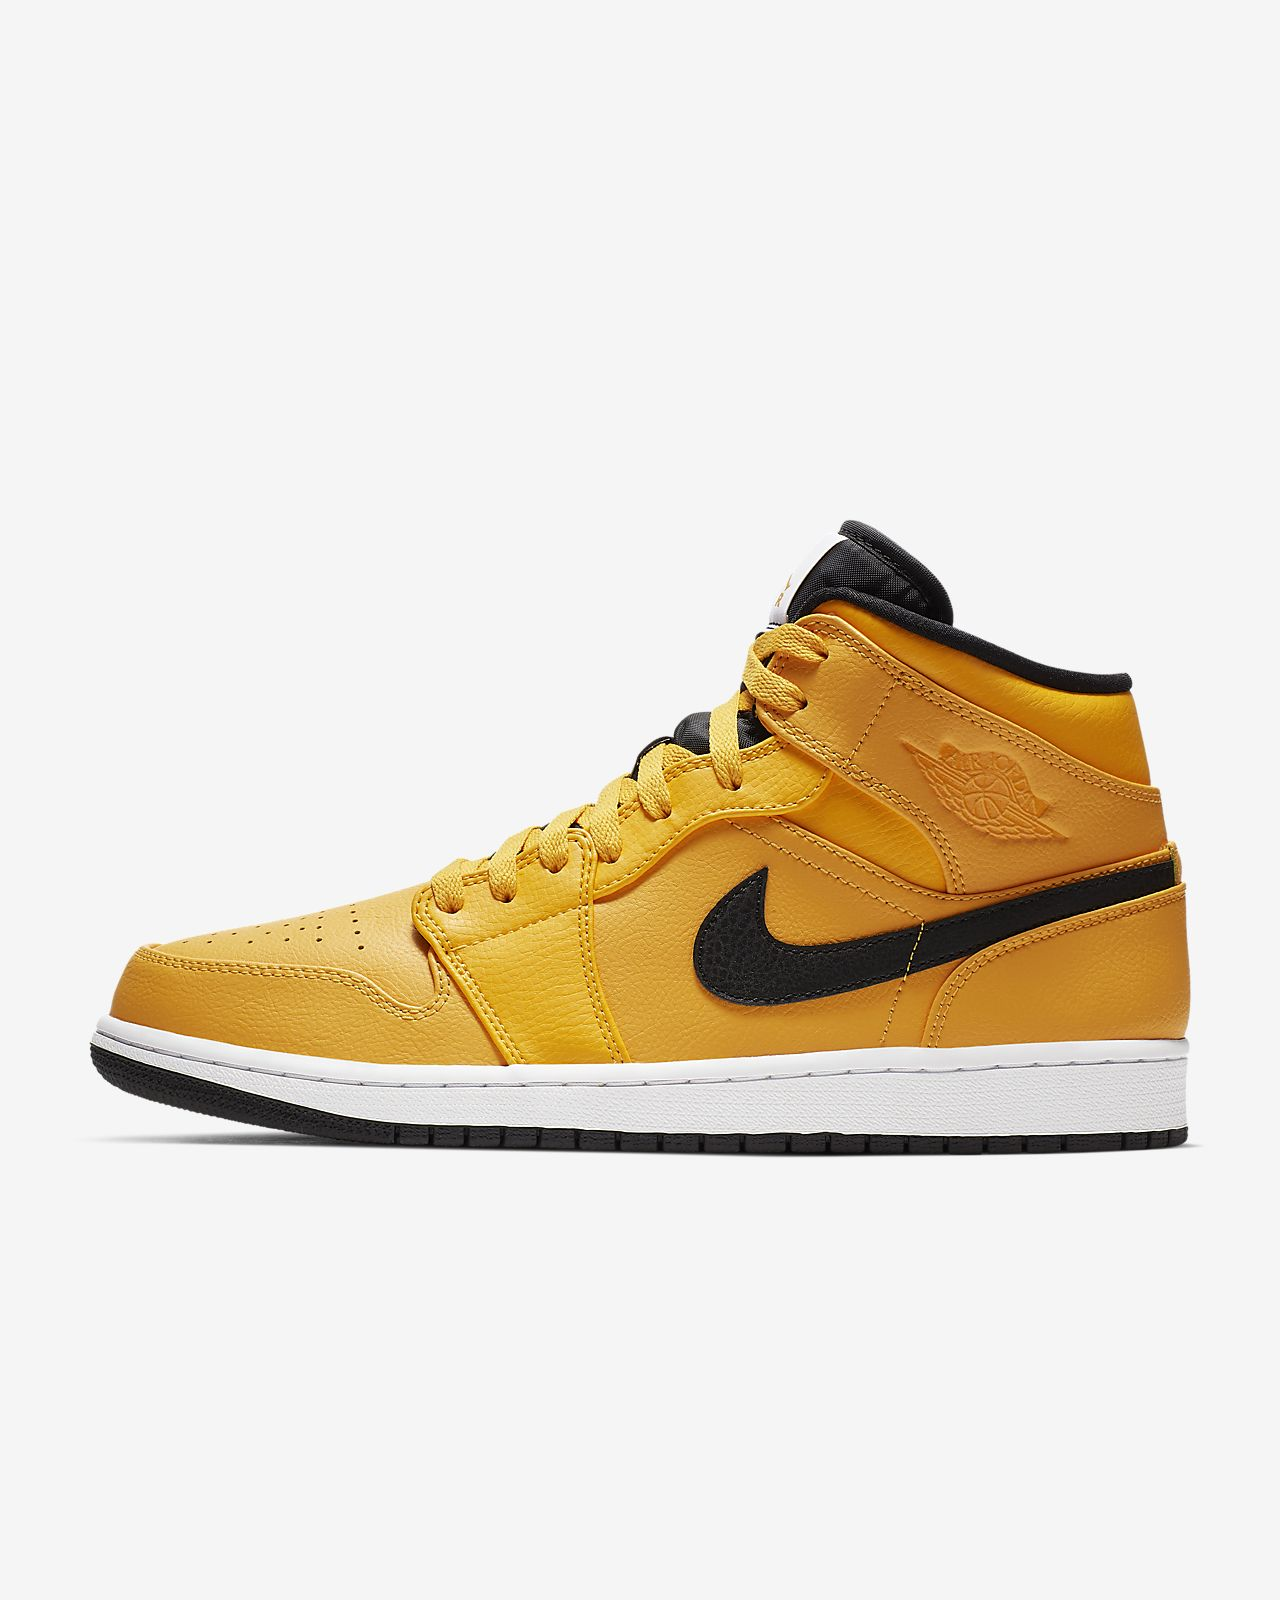 8299e8cc06d Air Jordan 1 Mid Men s Shoe. Nike.com